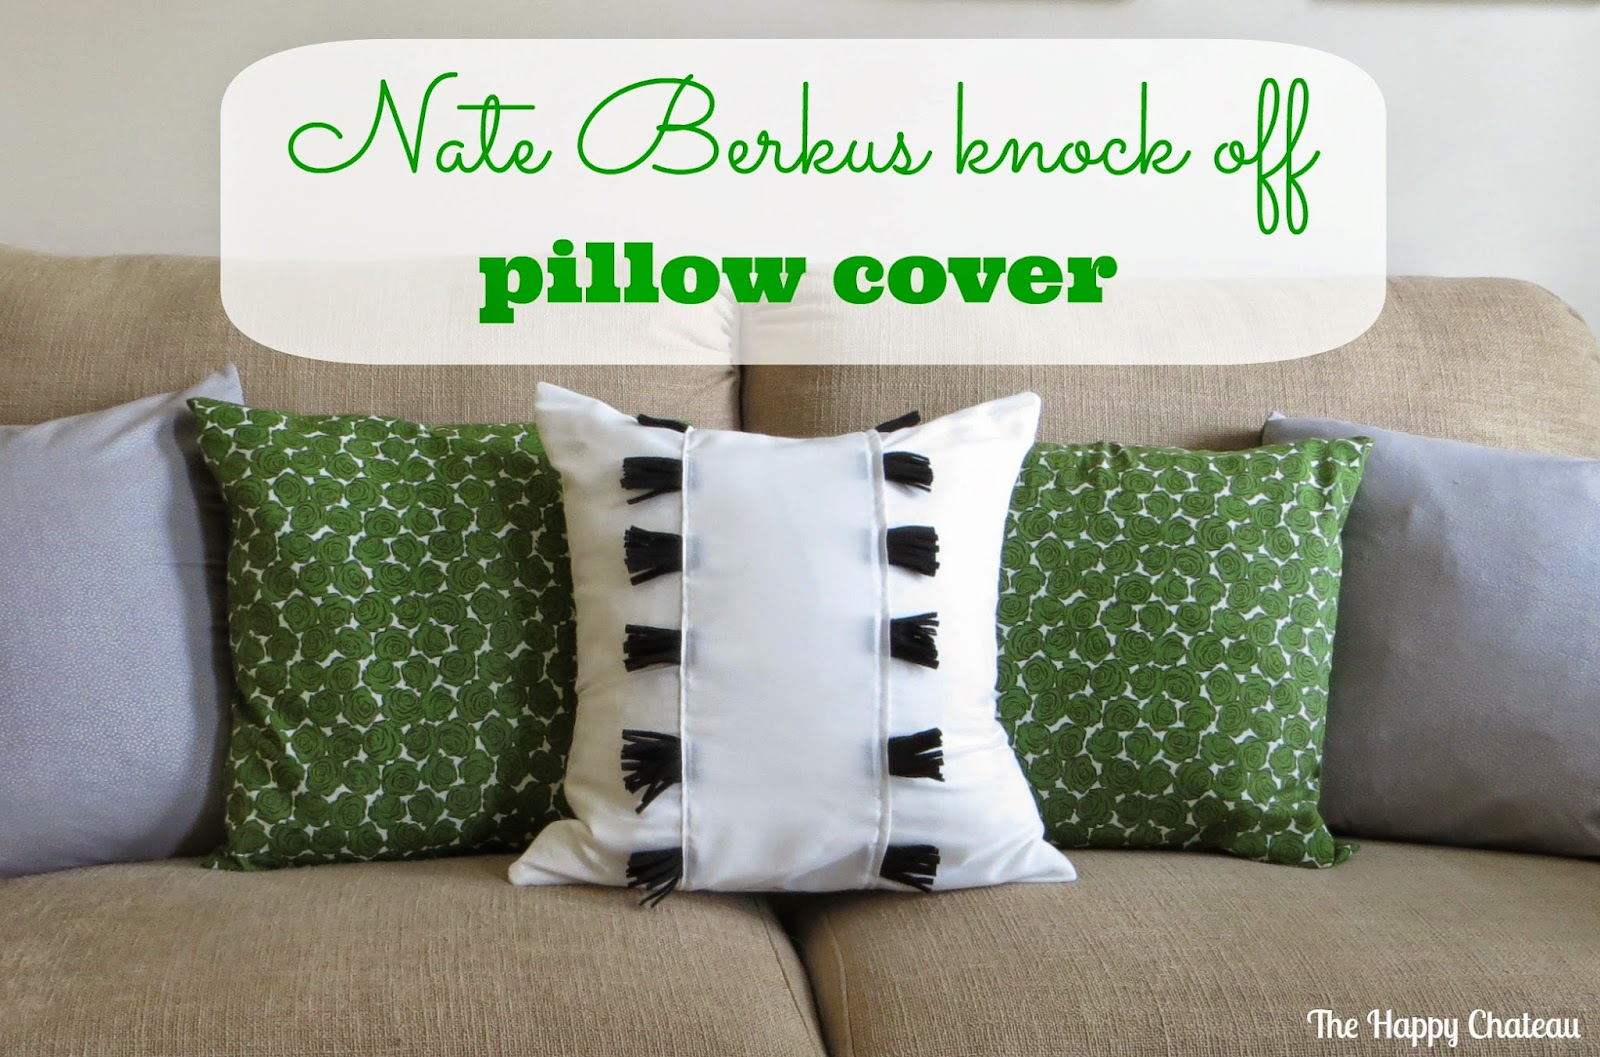 Inspiration Monday Feature - Nate Berkus knock-off pillow cover